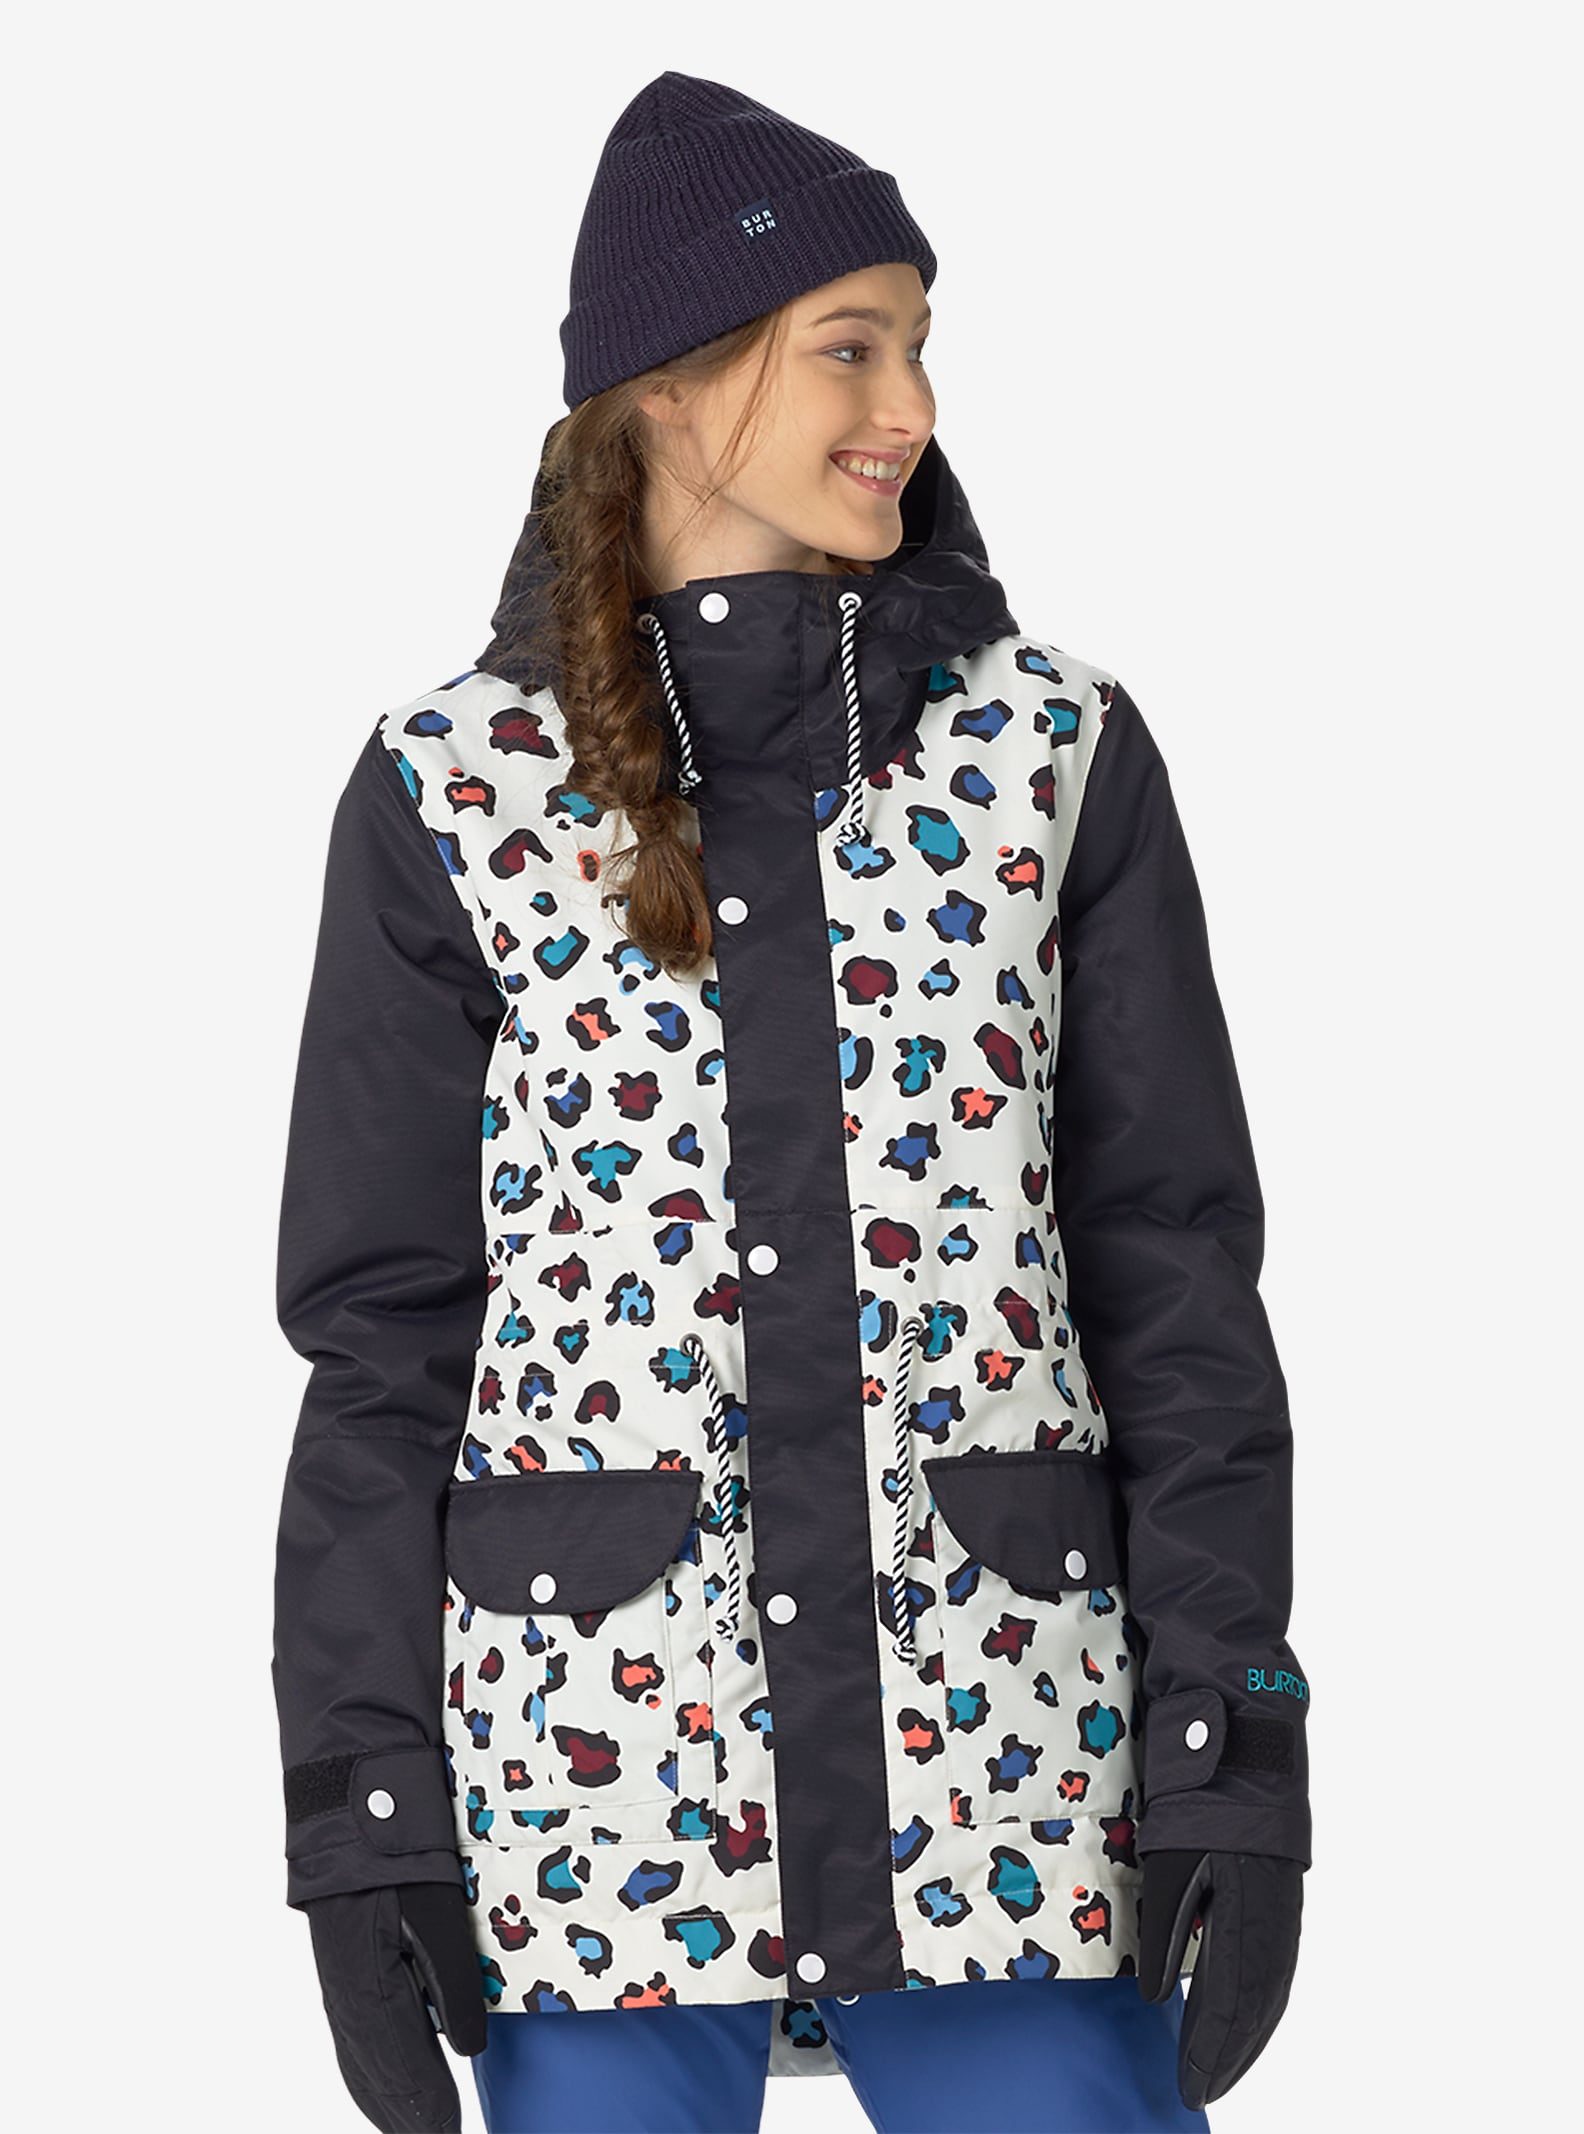 Burton TWC Troublemaker Jacket shown in Rainbow Cheetah / True Black